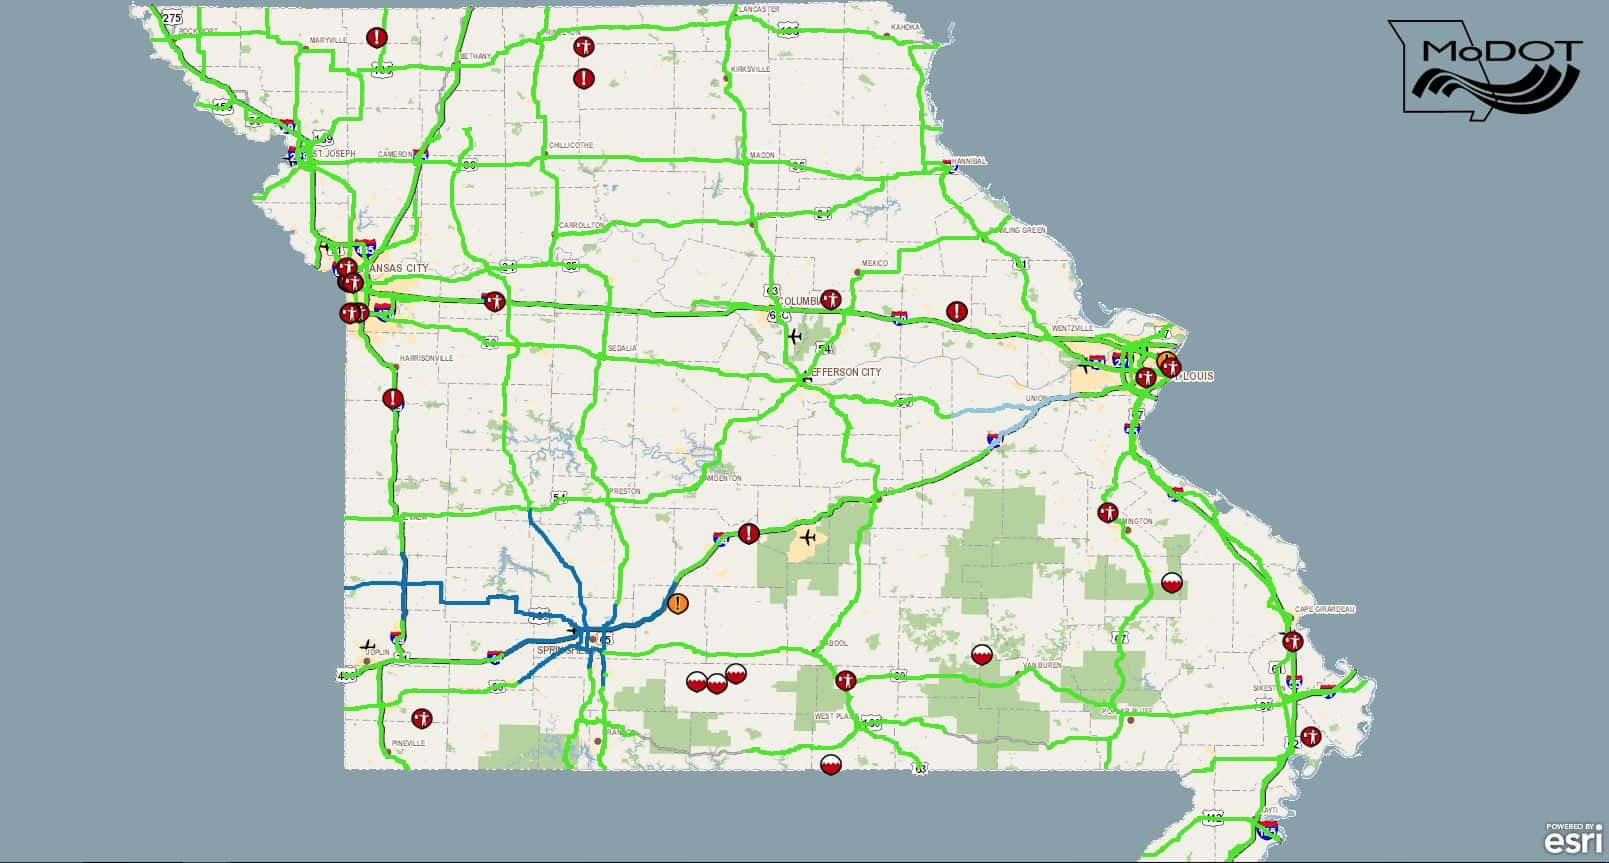 Modot Travelers Map Road Conditions; MoDOT Traveler Map | KTTS Modot Travelers Map